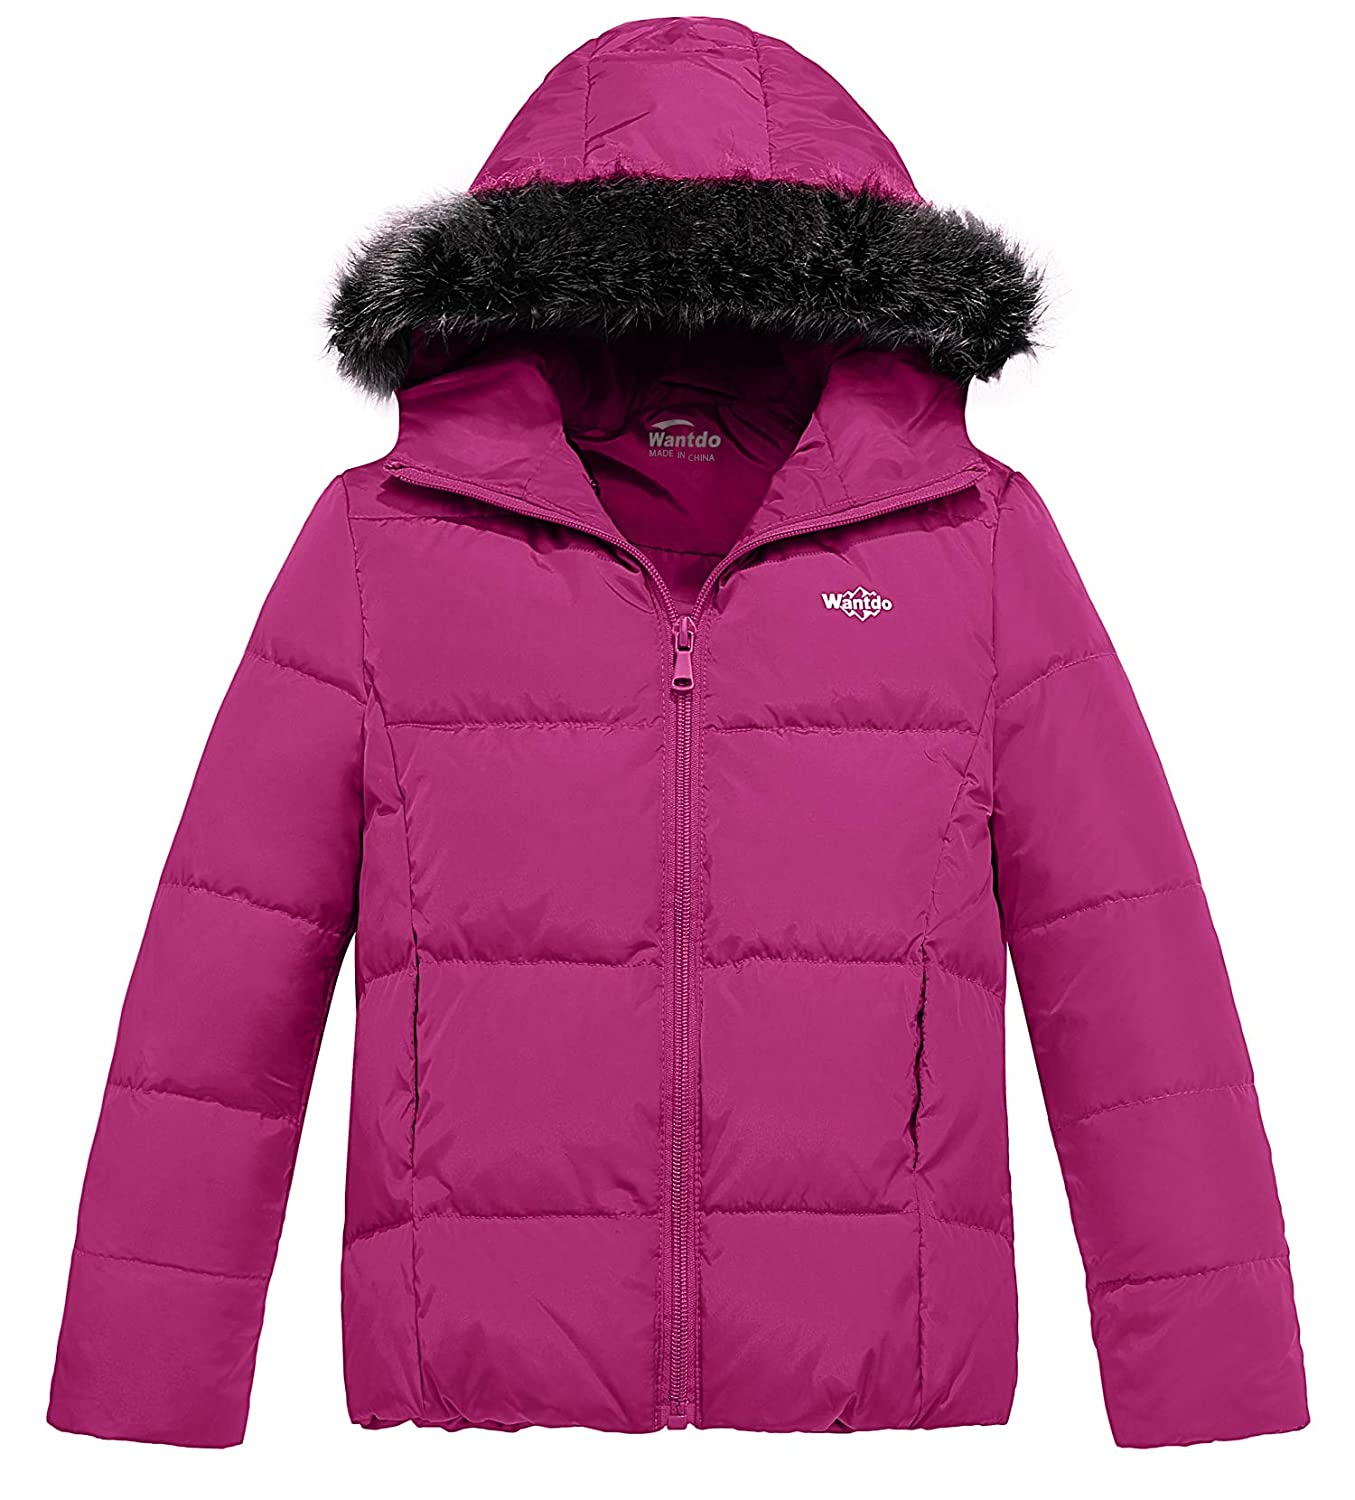 Wantdo Girls Down Jacket Lightweight Winter Coat with Faux Fur Collar Hooded Puffer Jacket